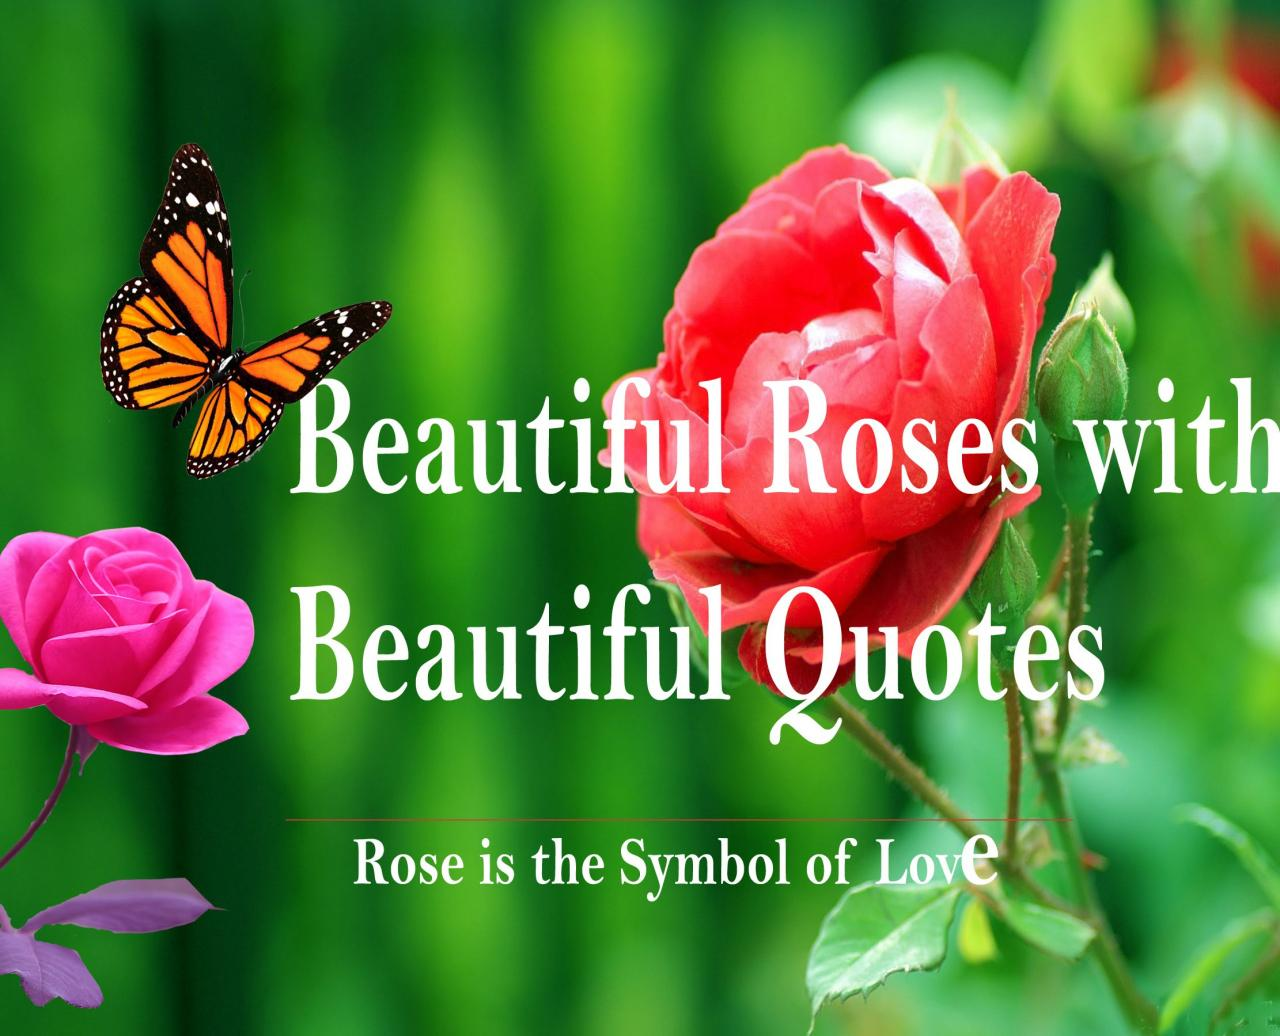 Beautiful Pictures Of Roses With Love Quotes Symbol Of Love Heart Touching Quotes Beautiful Roses